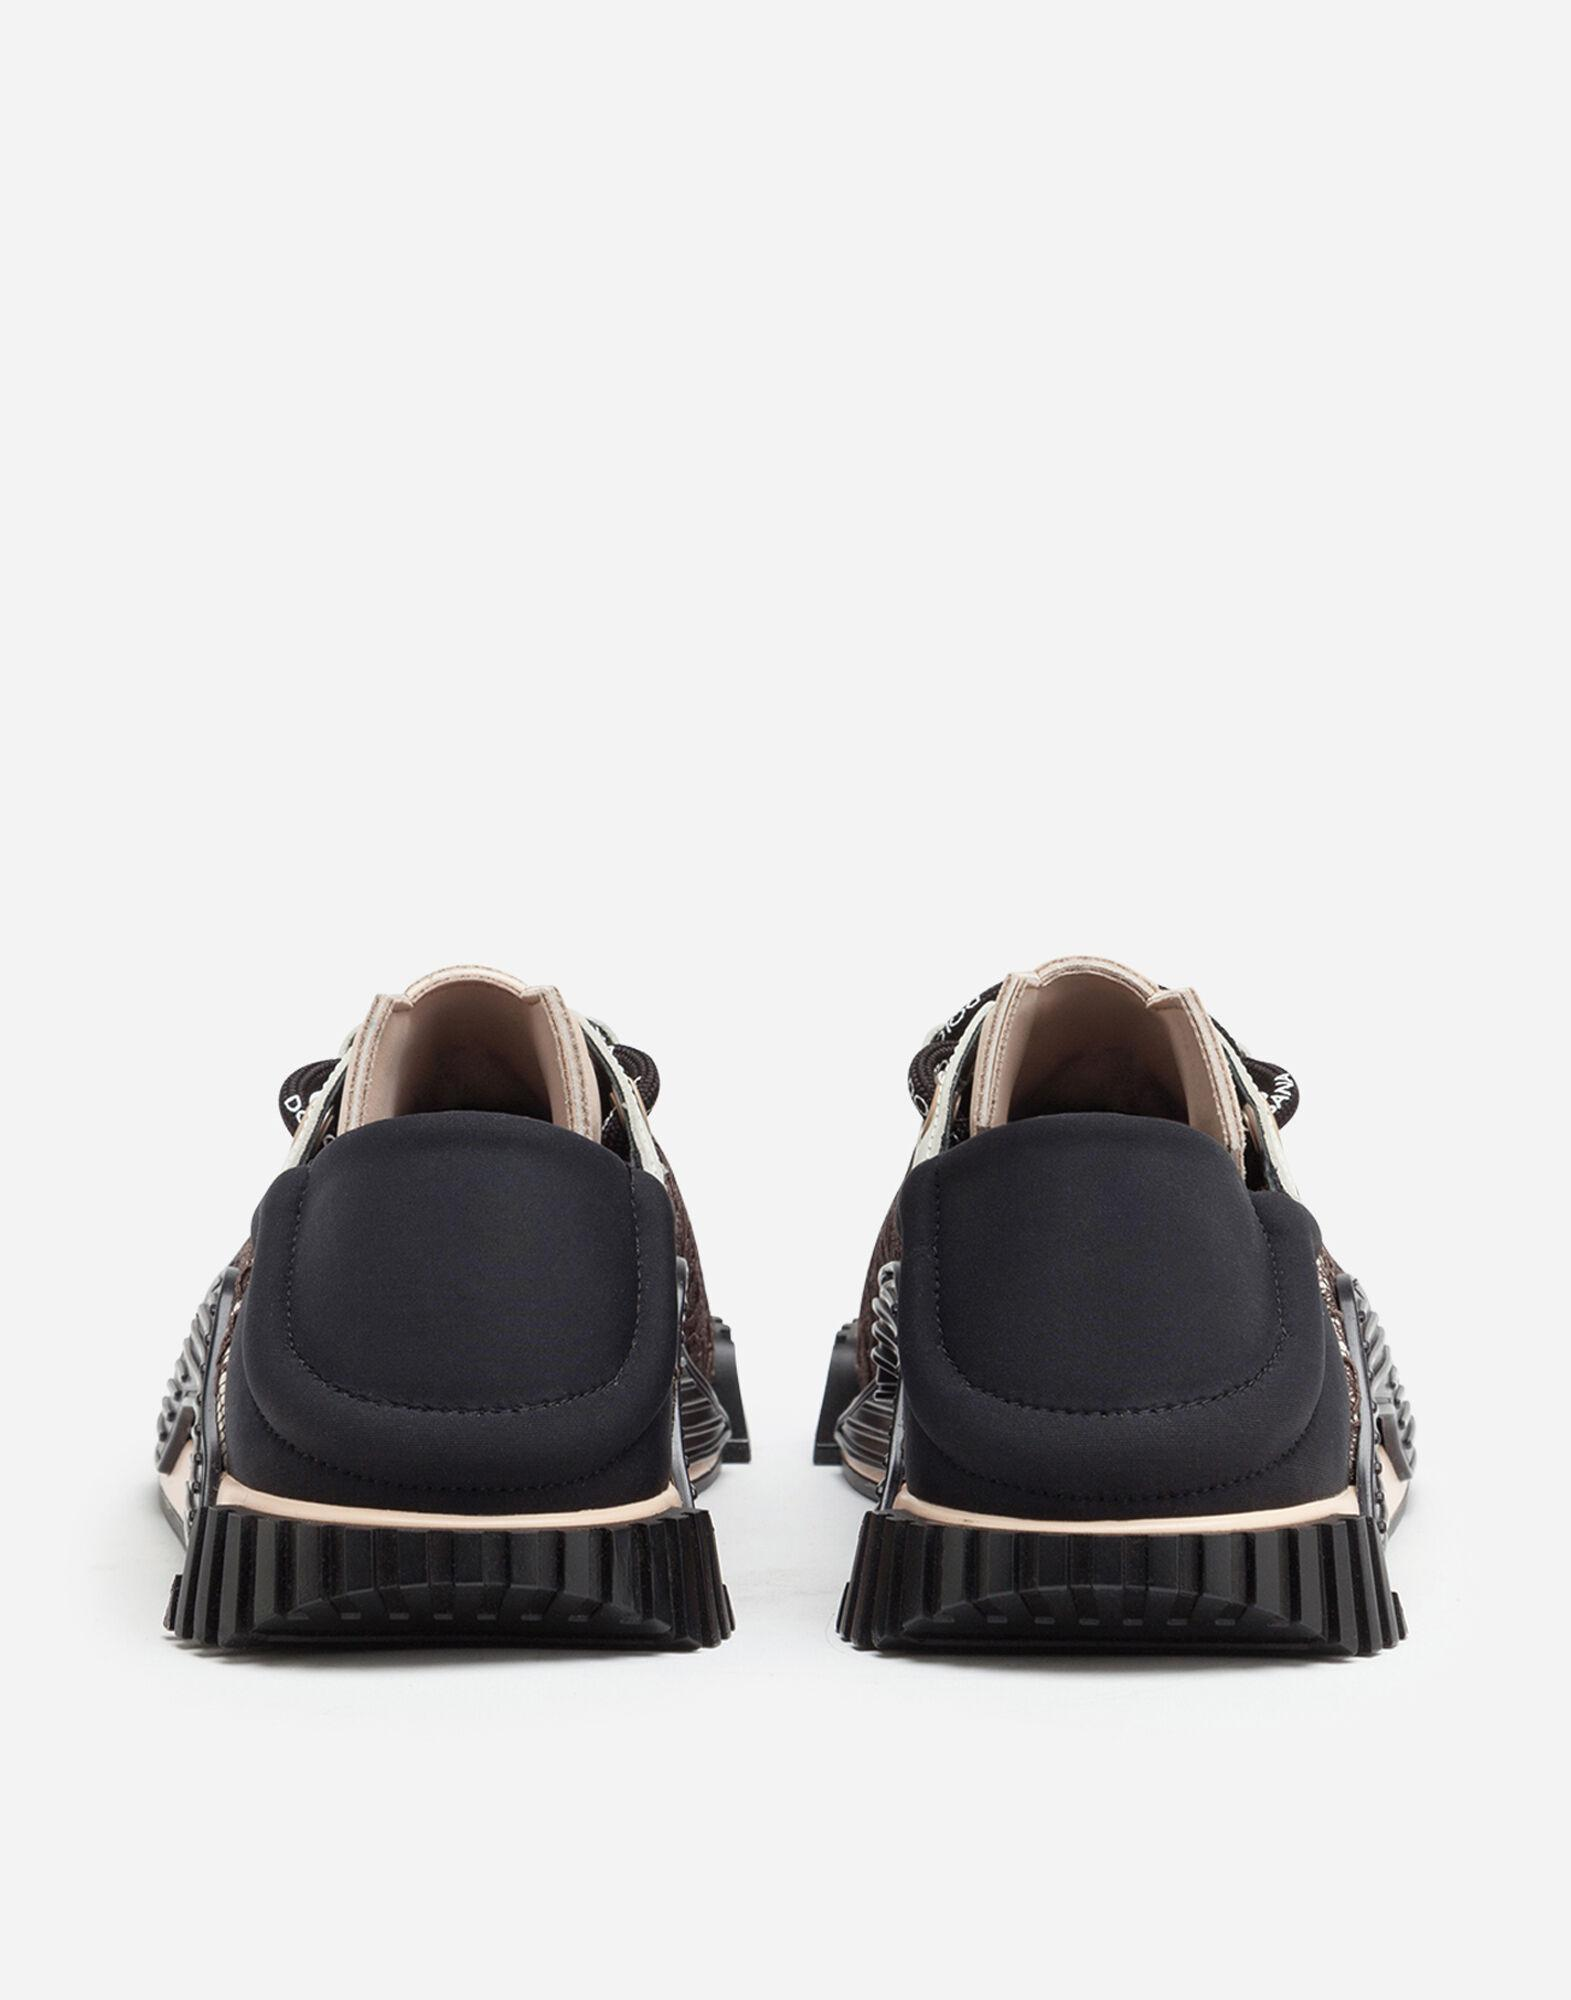 NS1 slip-on sneakers in mixed materials 2